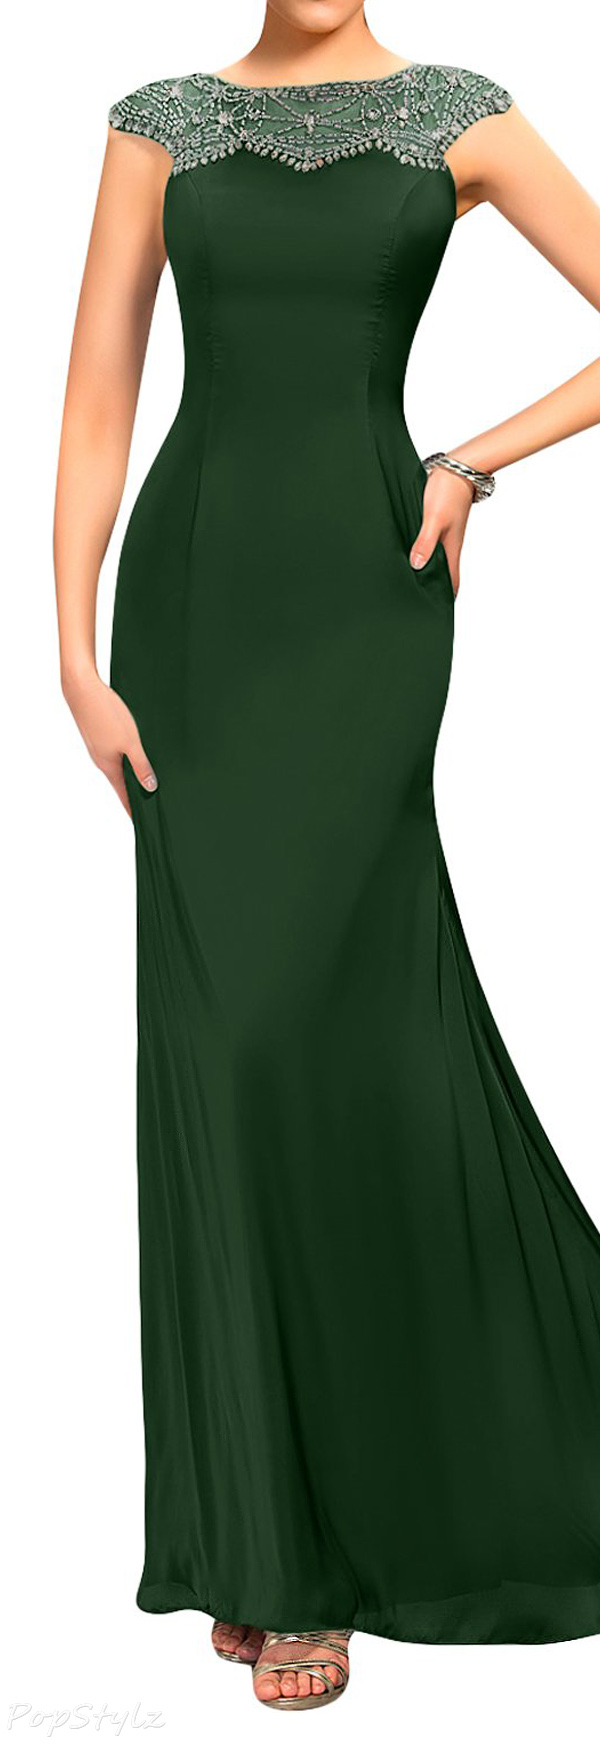 Sunvary Satin Chiffon Sheath Evening Gown